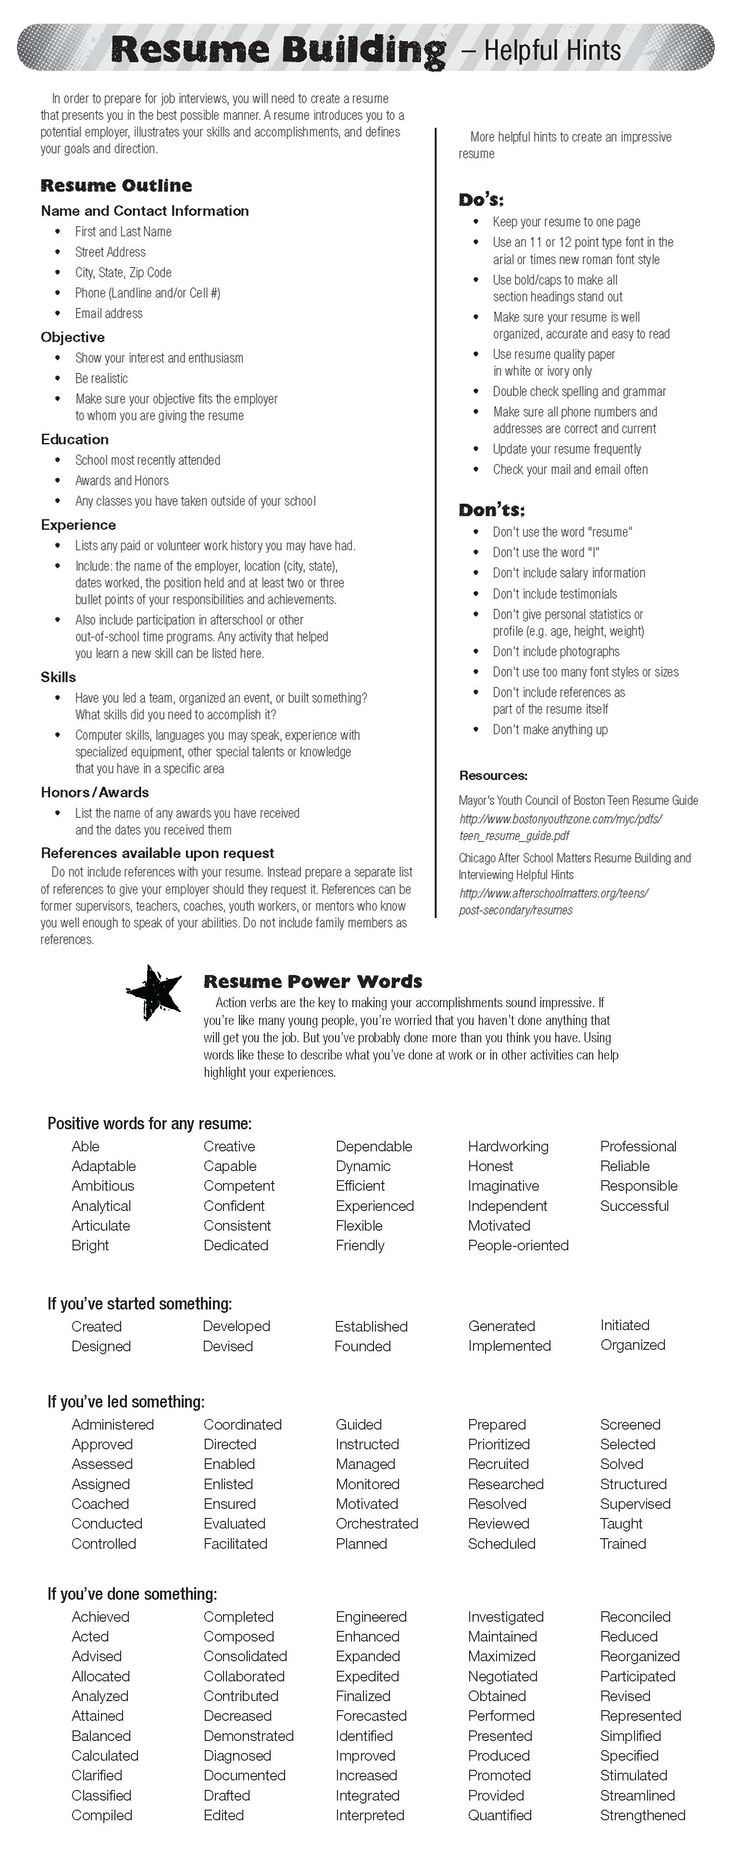 Opposenewapstandardsus  Gorgeous  Ideas About Resume On Pinterest  Cv Format Resume Cv And  With Fetching  Ideas About Resume On Pinterest  Cv Format Resume Cv And Resume Templates With Enchanting Dental Assistant Resume Sample Also Resume How Many Pages In Addition Design Engineer Resume And Resume Cv Example As Well As Resume Image Additionally Pretty Resume From Pinterestcom With Opposenewapstandardsus  Fetching  Ideas About Resume On Pinterest  Cv Format Resume Cv And  With Enchanting  Ideas About Resume On Pinterest  Cv Format Resume Cv And Resume Templates And Gorgeous Dental Assistant Resume Sample Also Resume How Many Pages In Addition Design Engineer Resume From Pinterestcom